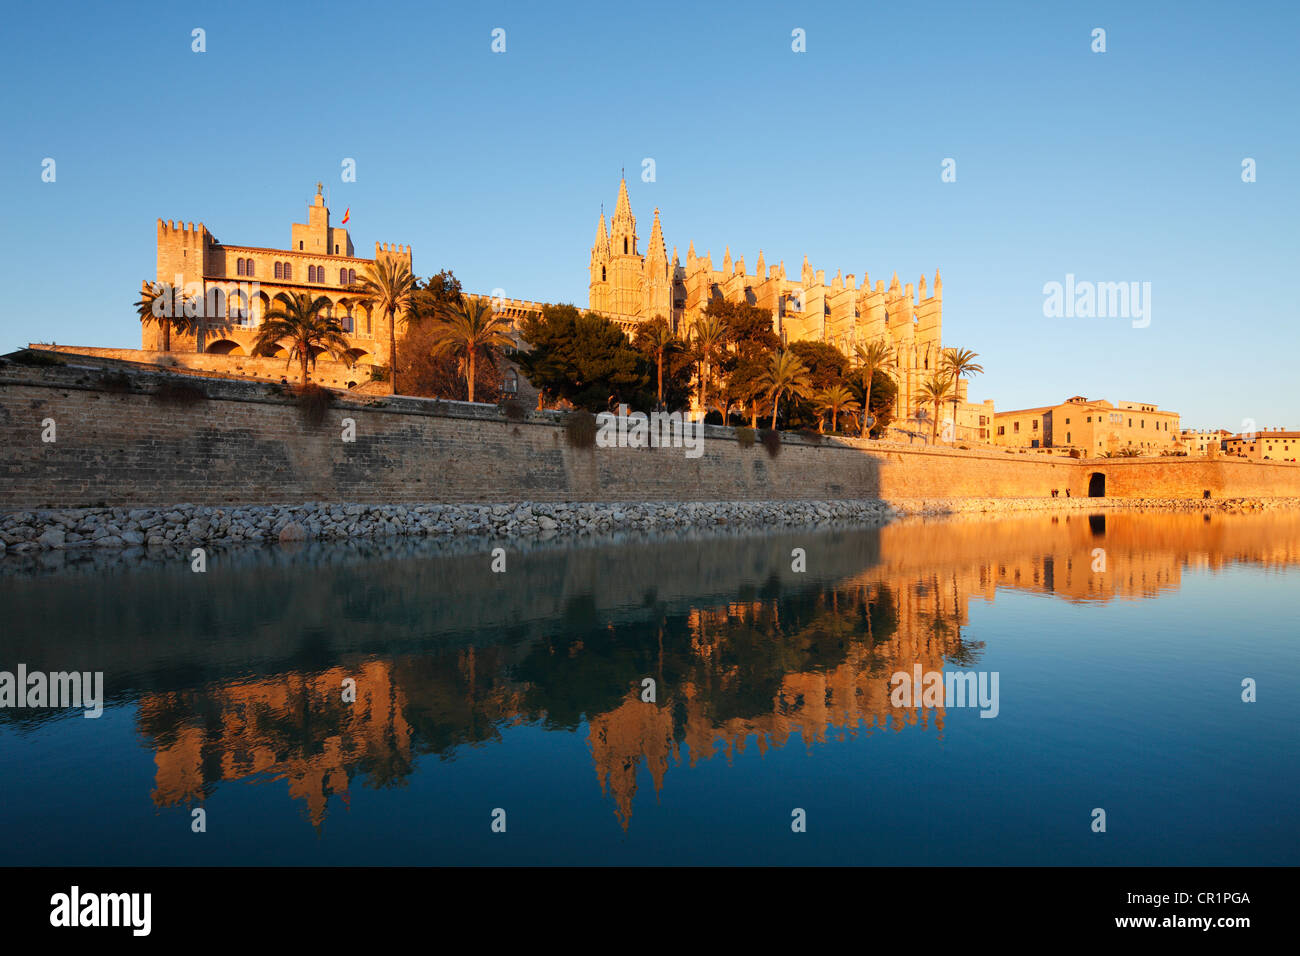 Almudaina Palace, La Seu Cathedral, Parc de Mar, Palma de Majorca, Majorca, Balearic Islands, Spain, Europe - Stock Image